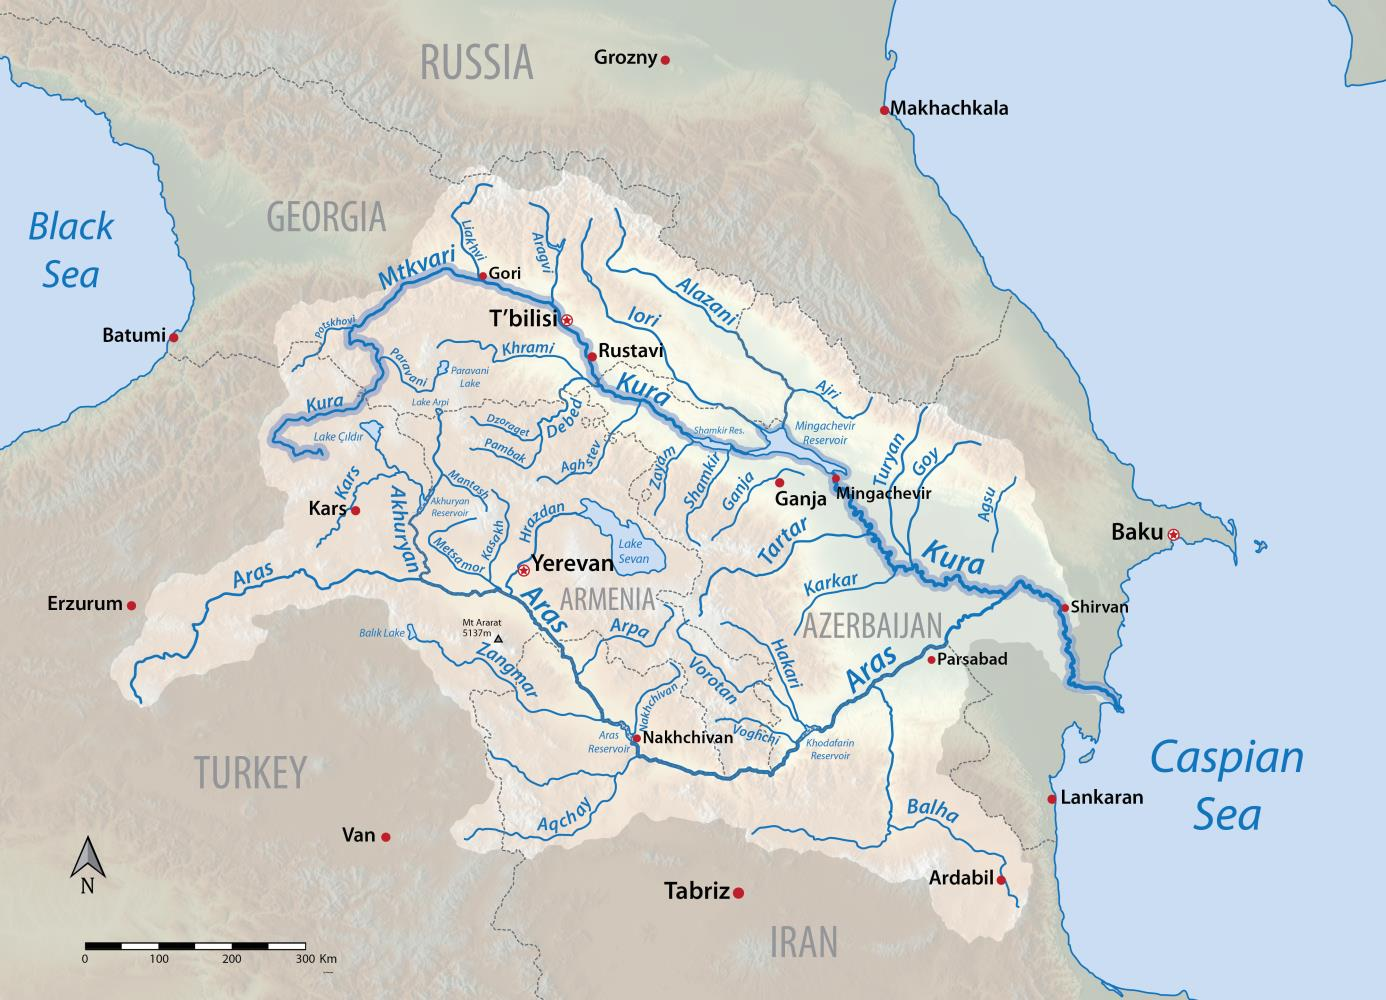 Map of the Kura (Mtkvari) - Aras river system in Armenia, Azerbaijan, Georgia, Iran and Turkey. Shaded relief data from US Geological Survey.